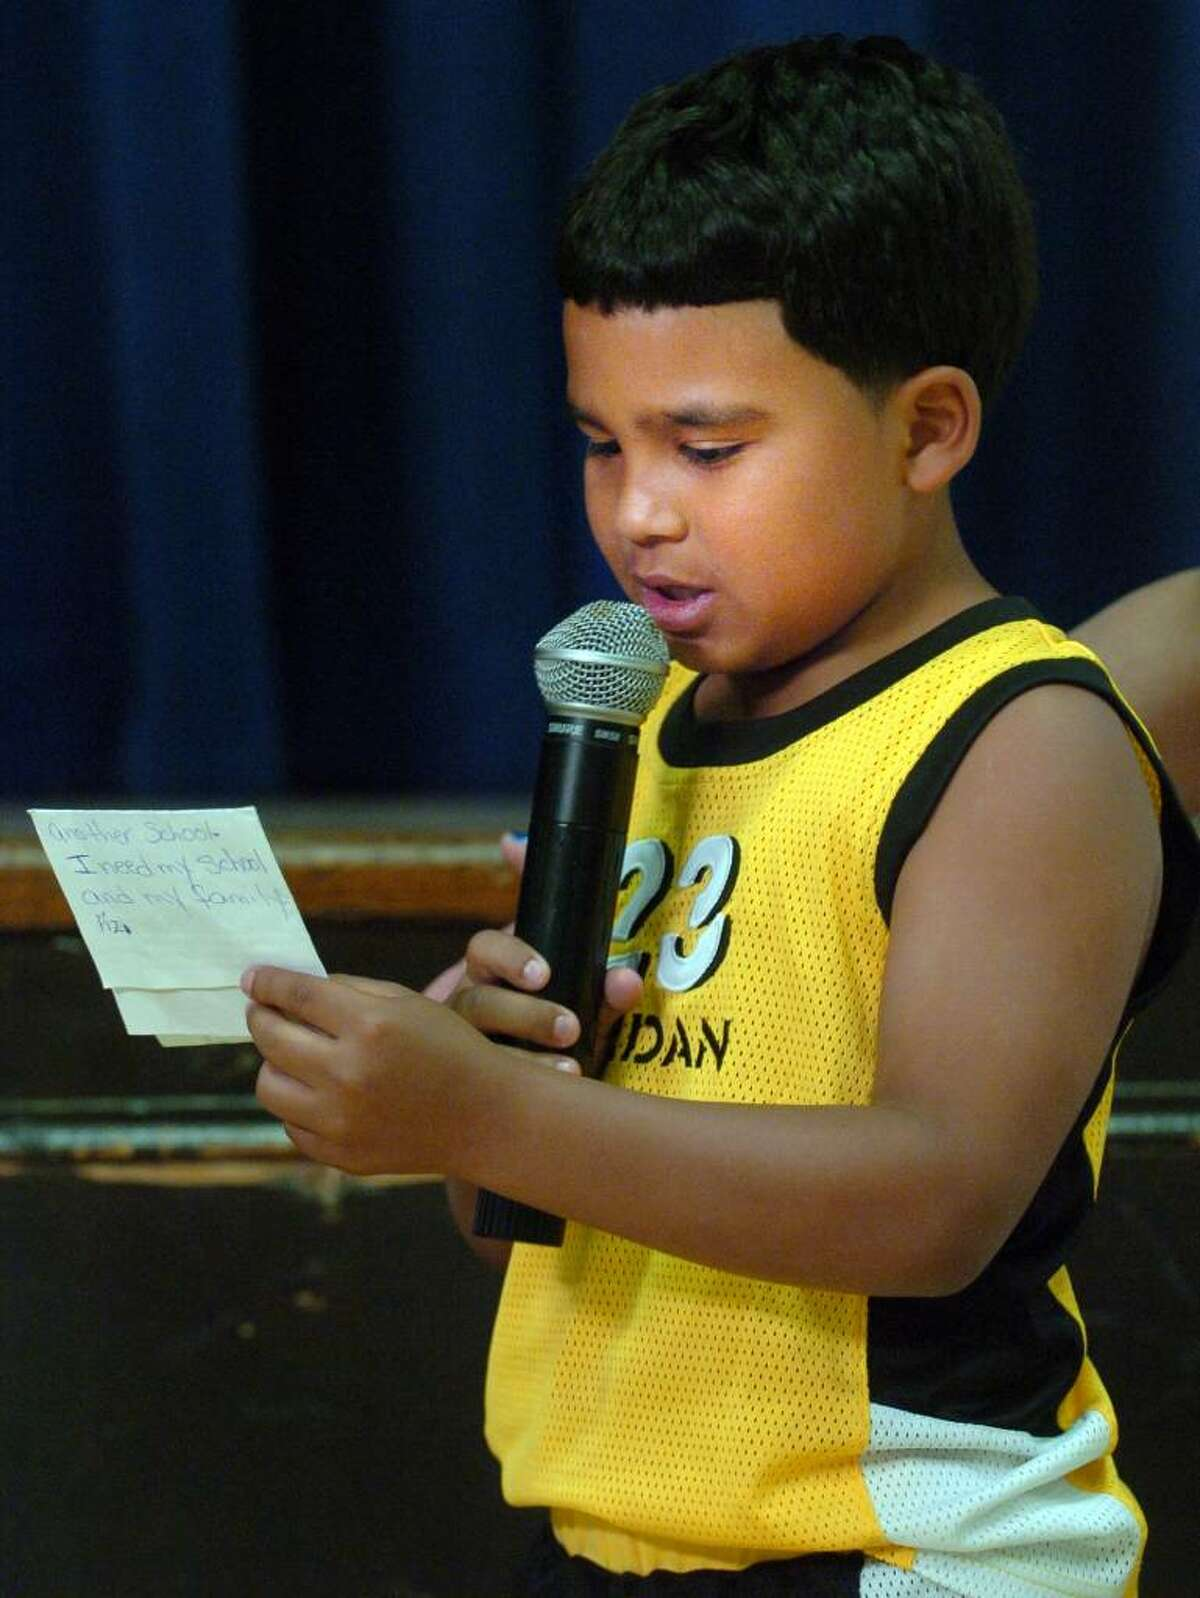 Roosevelt School second-grader Luis Reyes reads a note to Superintendent of Schools John Ramos Tuesday June 8, 2010 during a meeting to discuss plans to close the school as part of a budget cutting measure.